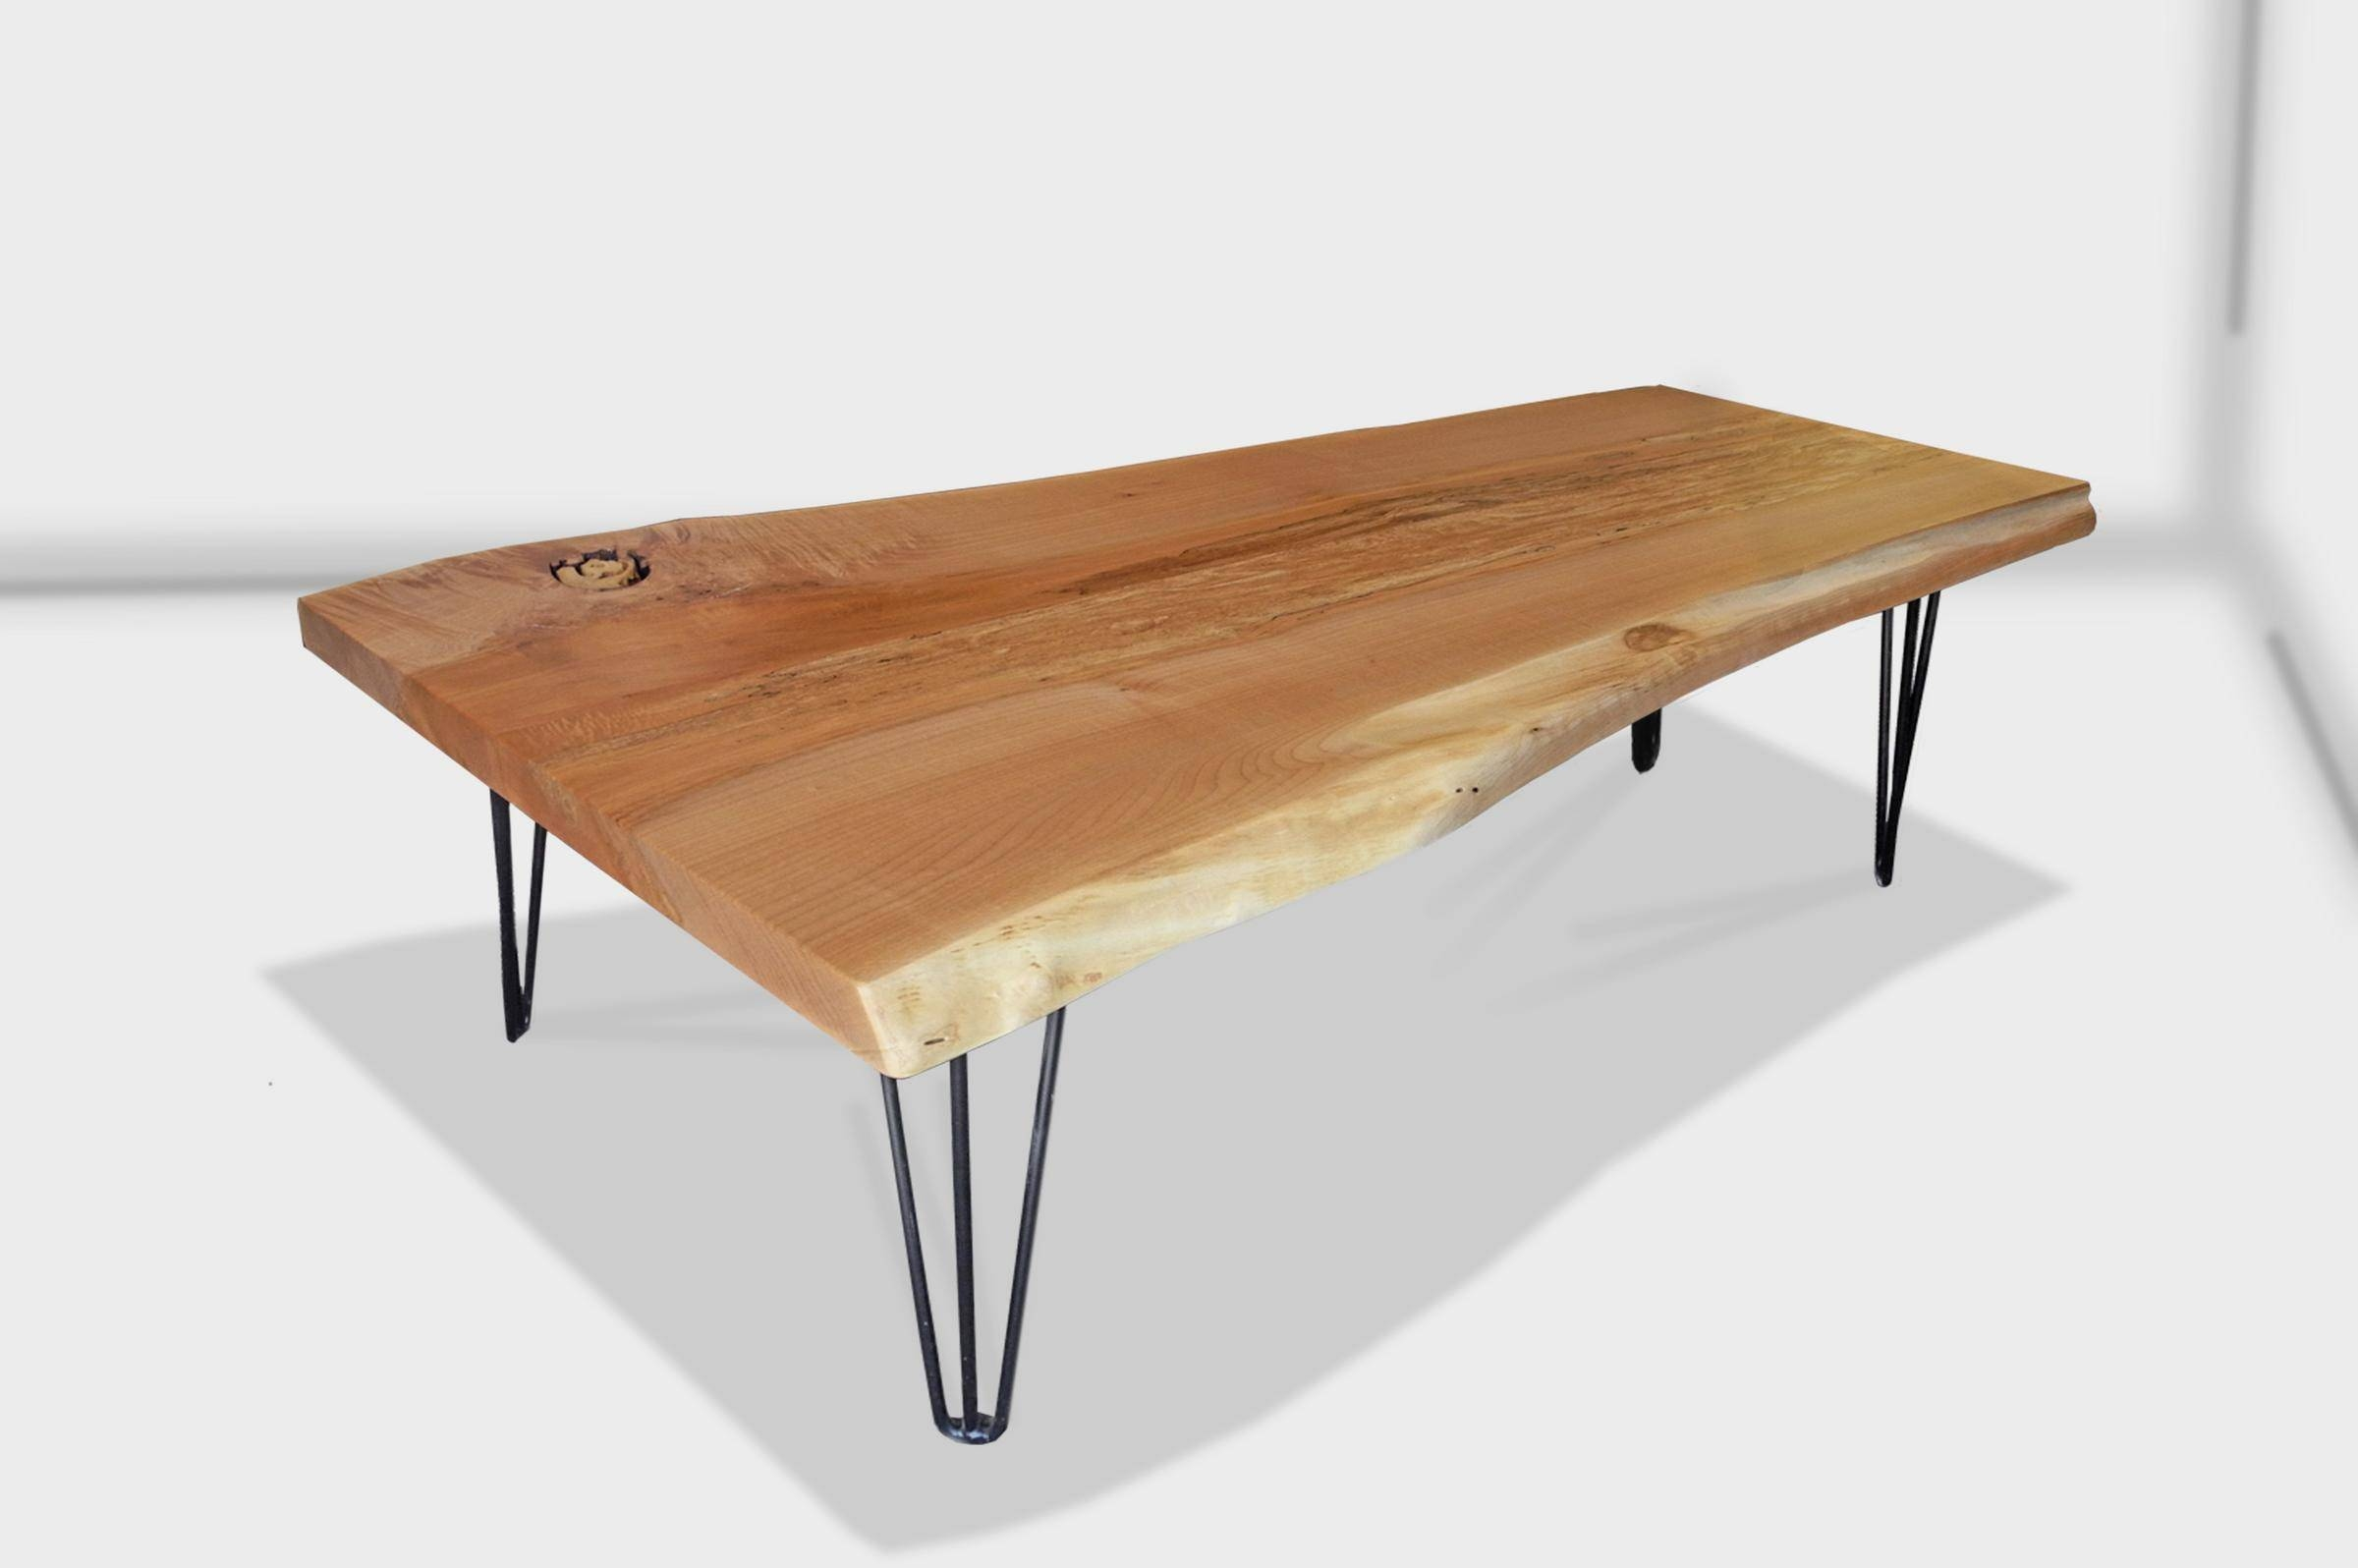 Live Edge Slab Coffee Table With Steel Hair Pin Legs pertaining to Live Edge Coffee Tables (Image 13 of 15)